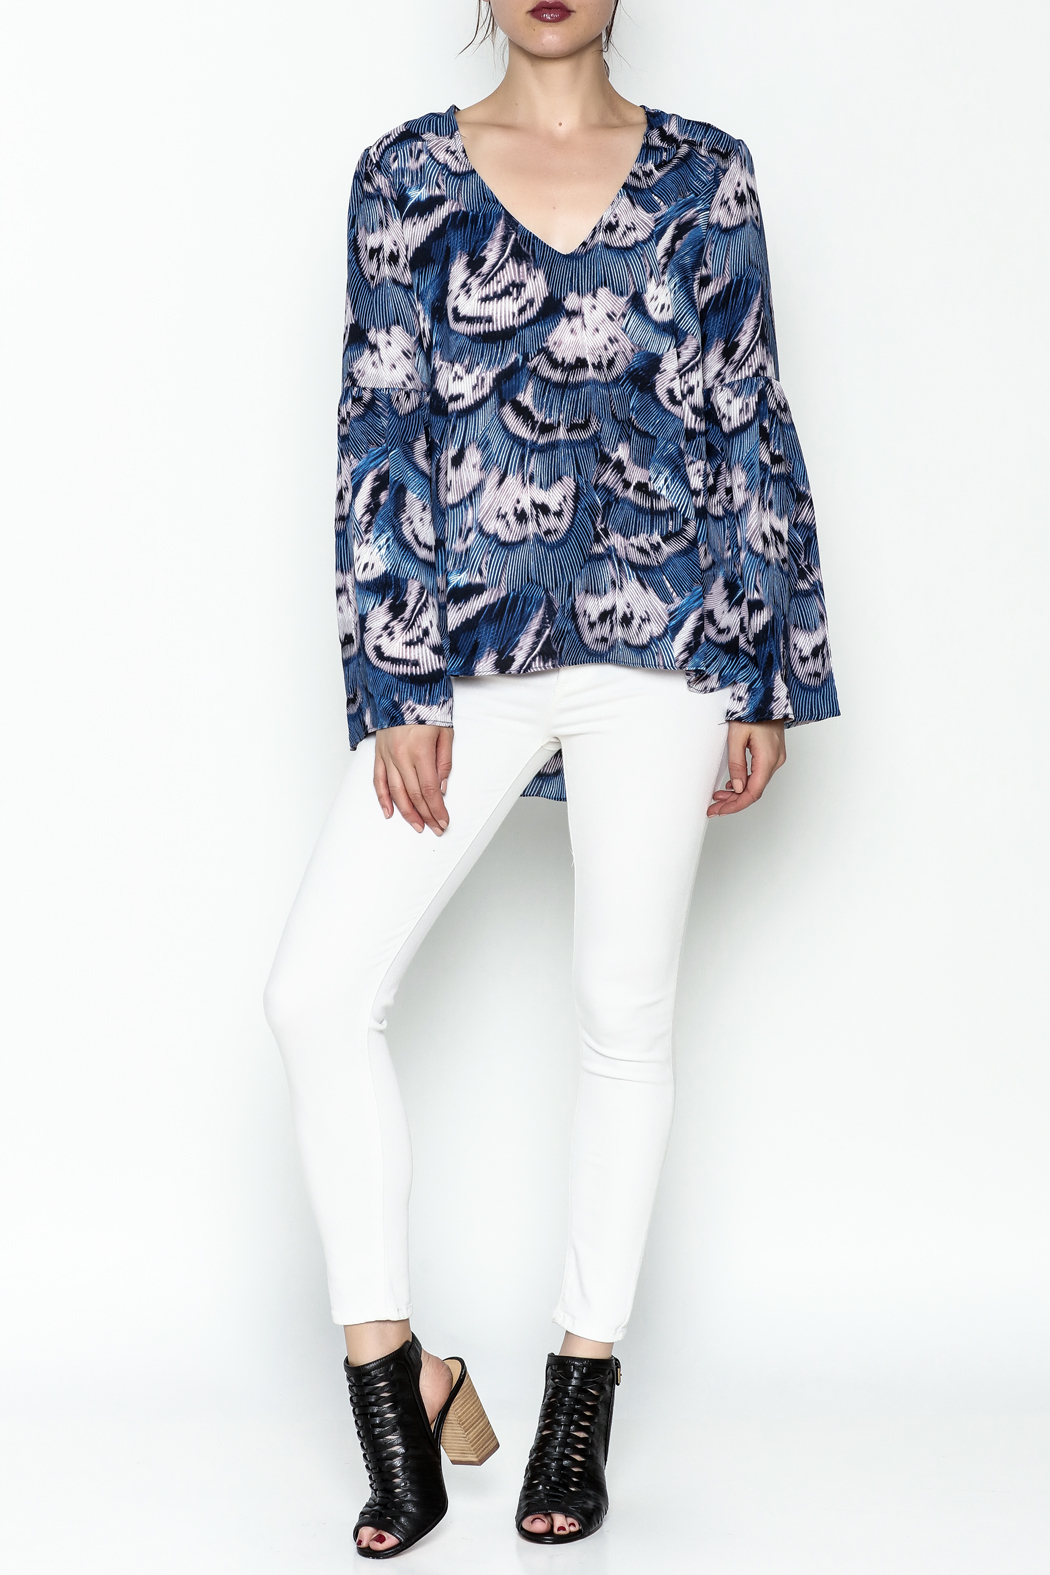 Buddy Love Peacock Printed Blouse - Side Cropped Image